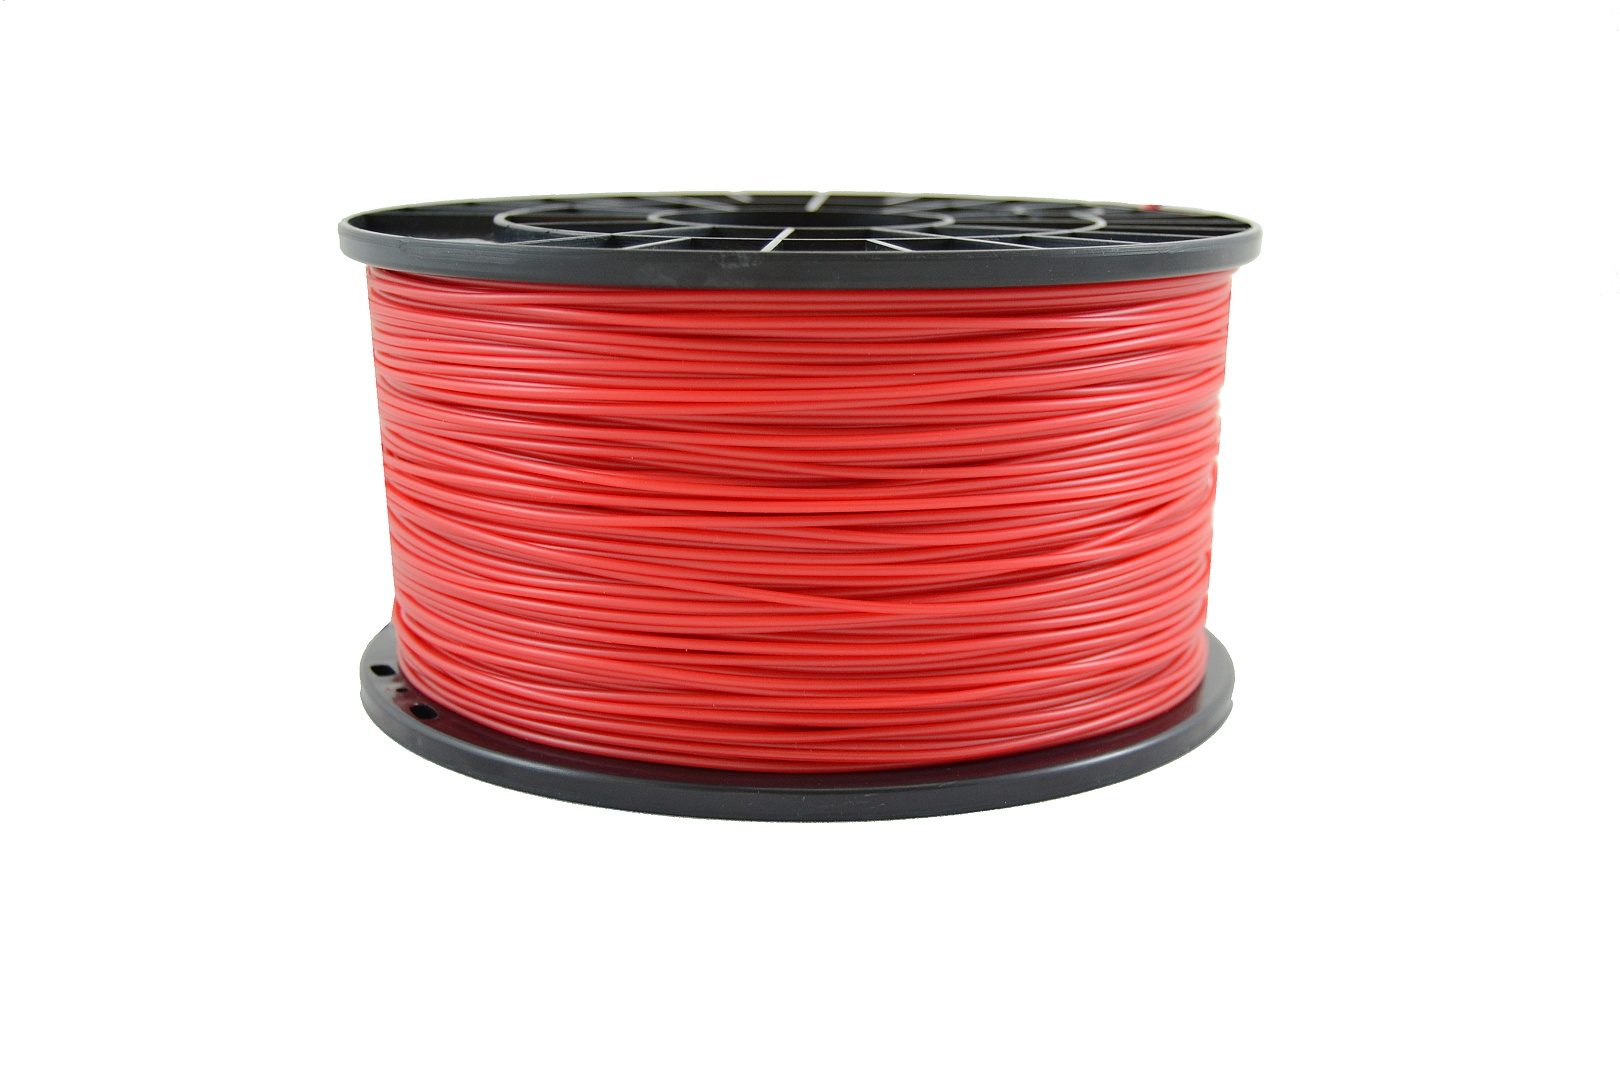 Polypropylen filament červená 1,75 mm 0,9 kg